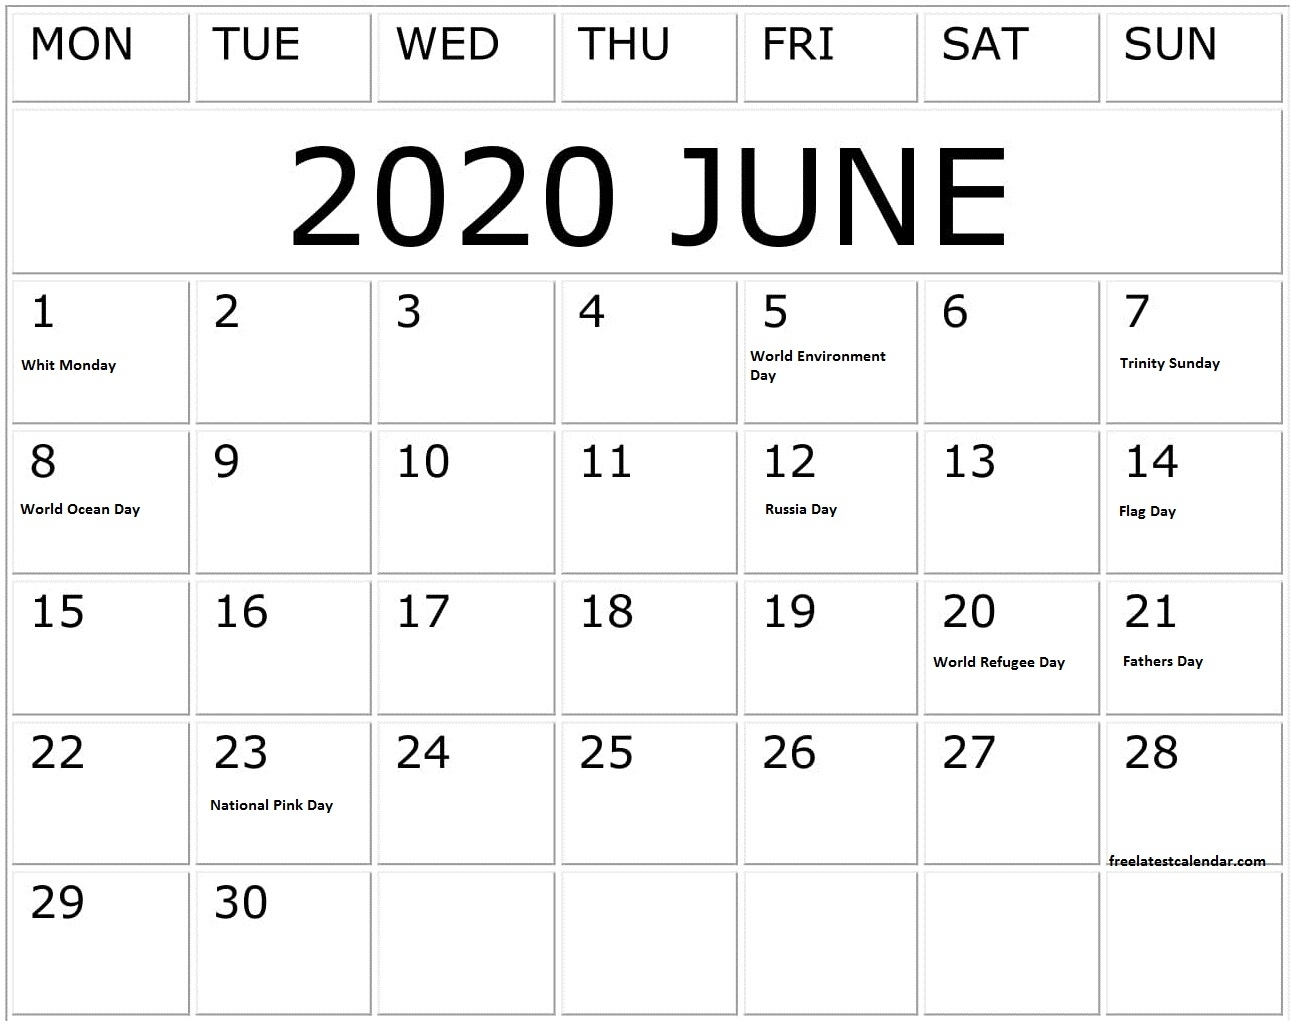 June 2020 Calendar With Holidays And Special Days – Free throughout Special Days In June 2020